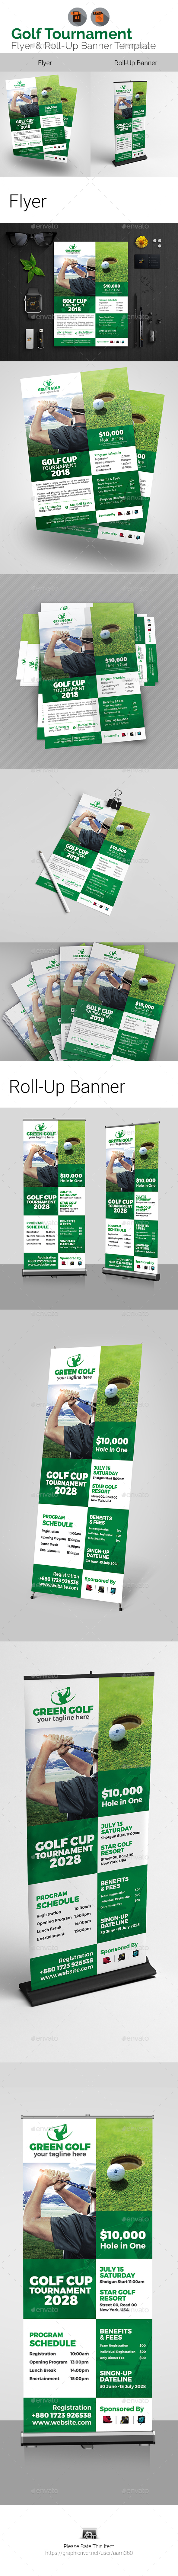 golf graphics designs templates from graphicriver